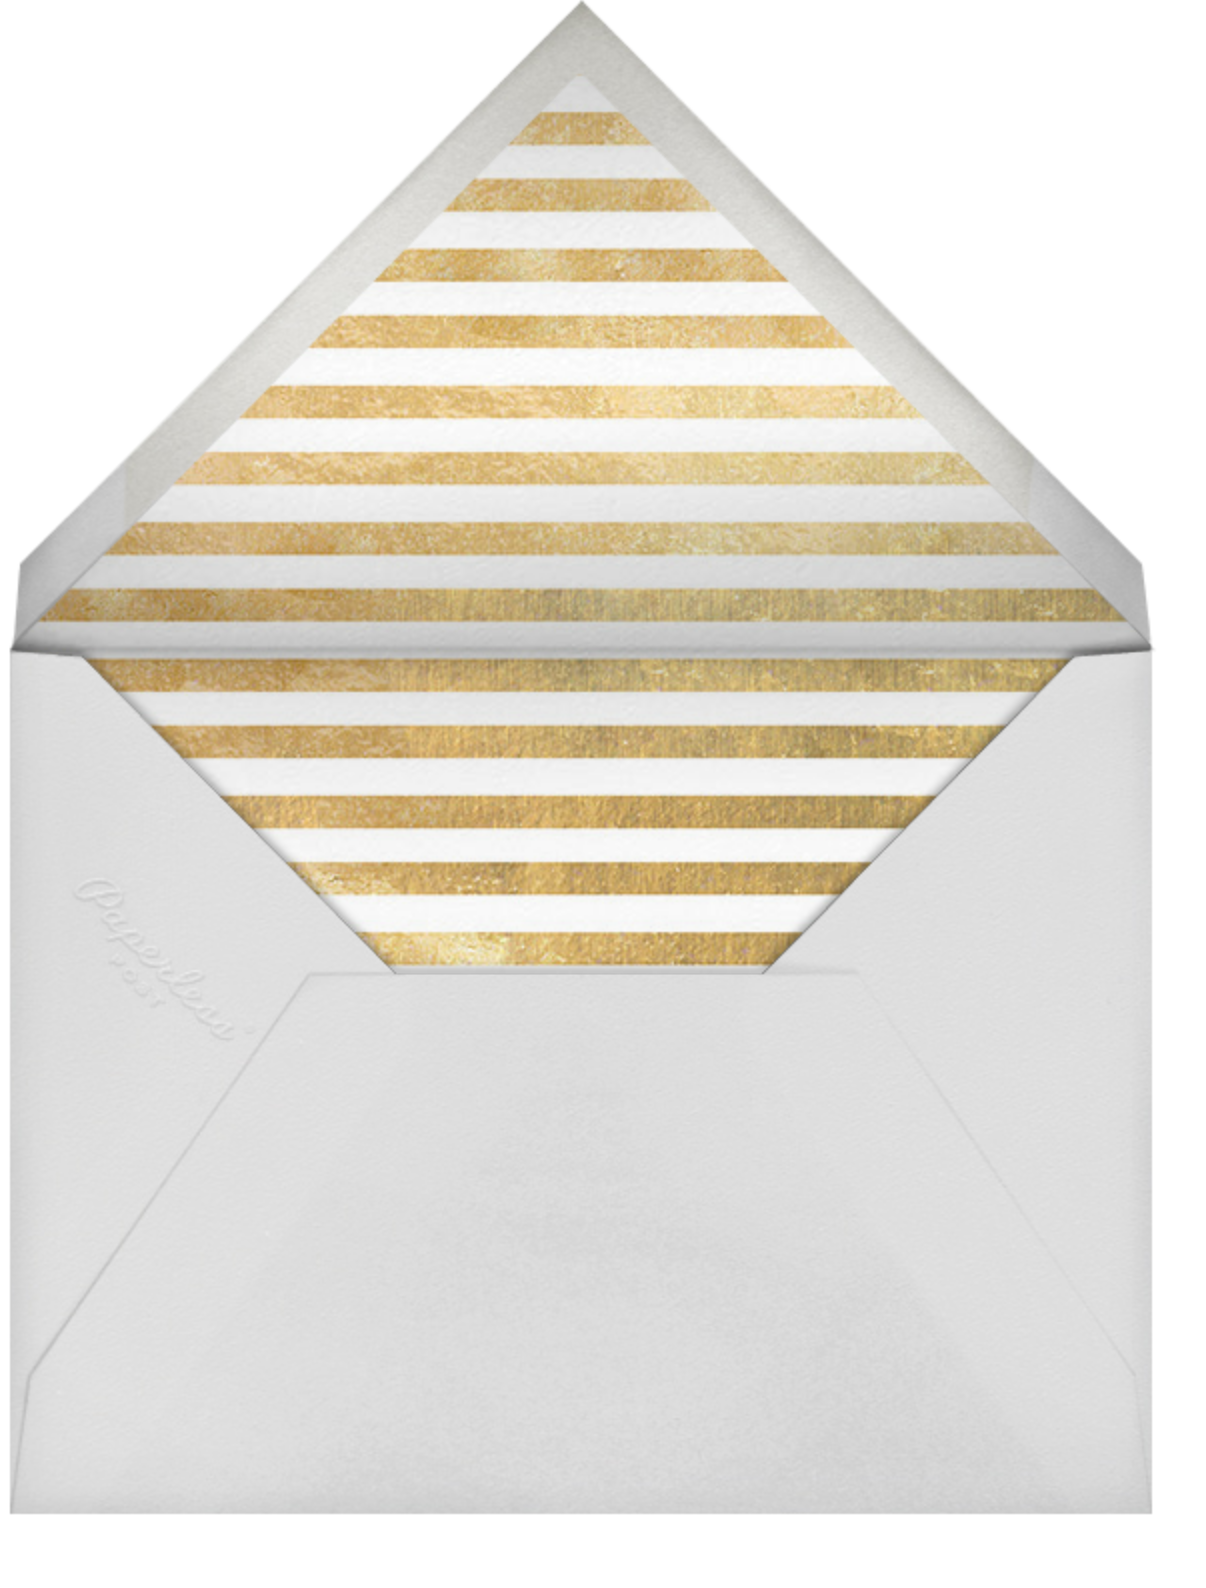 Confetti (Stationery) - Aqua/Gold - kate spade new york - Baby and kids' - envelope back